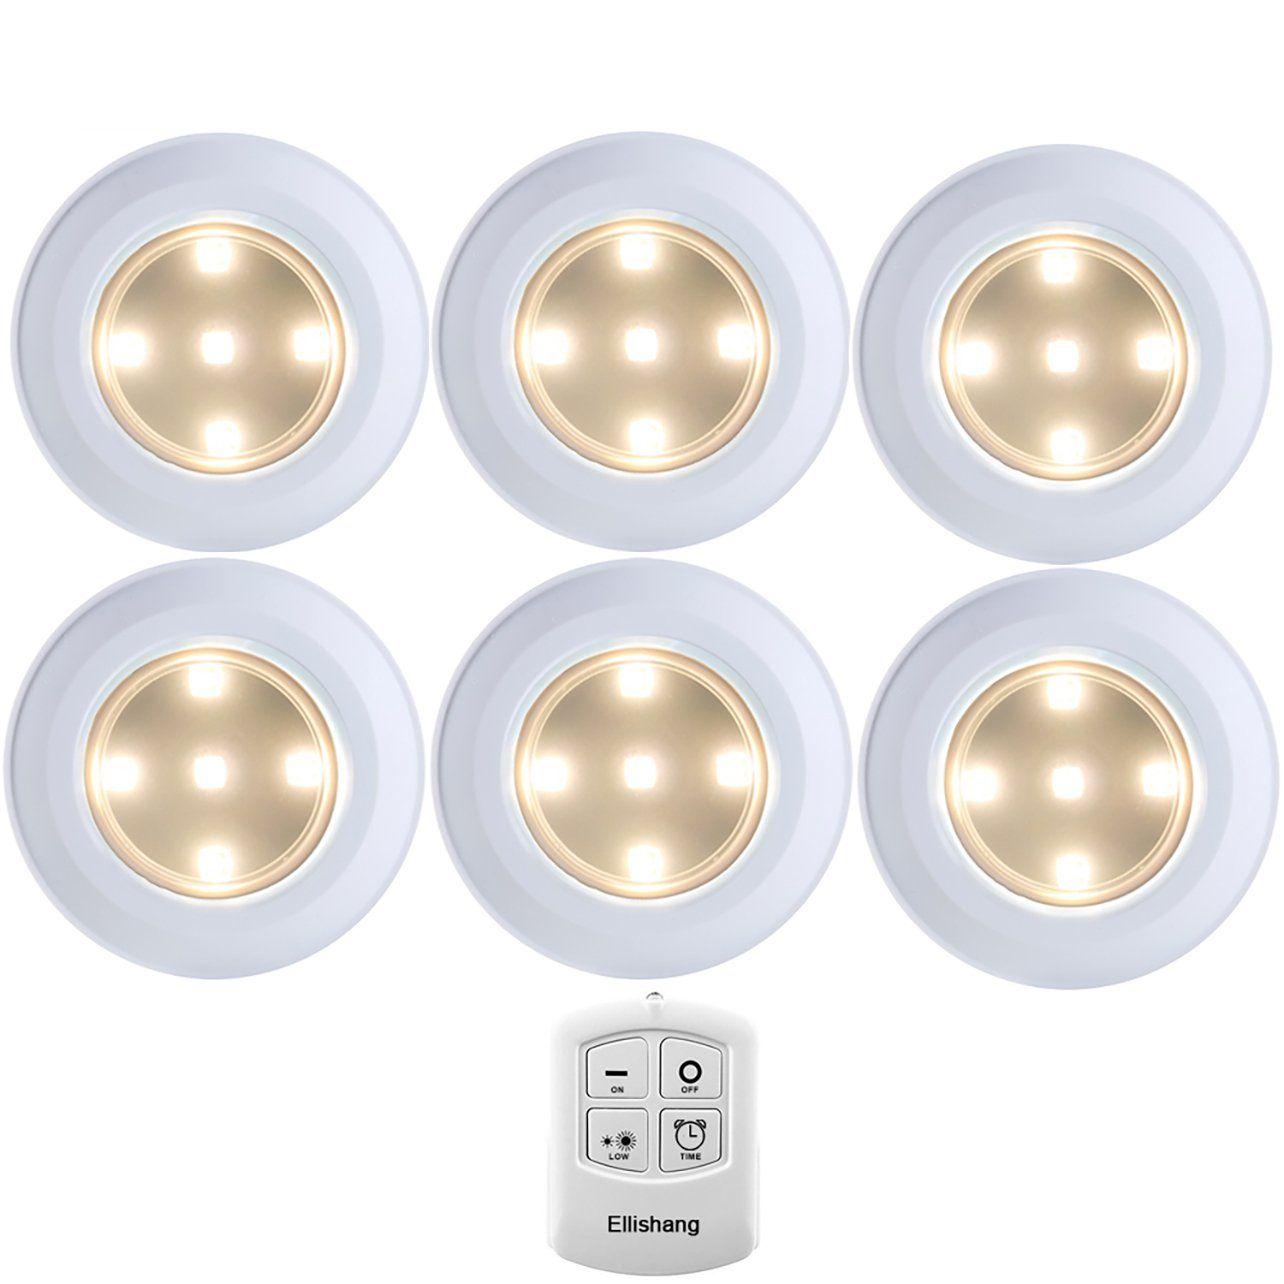 Puck lights with remote control ellishang 6 pack led tap lights puck lights with remote control ellishang 6 pack led tap lights battery powered wireless aloadofball Choice Image